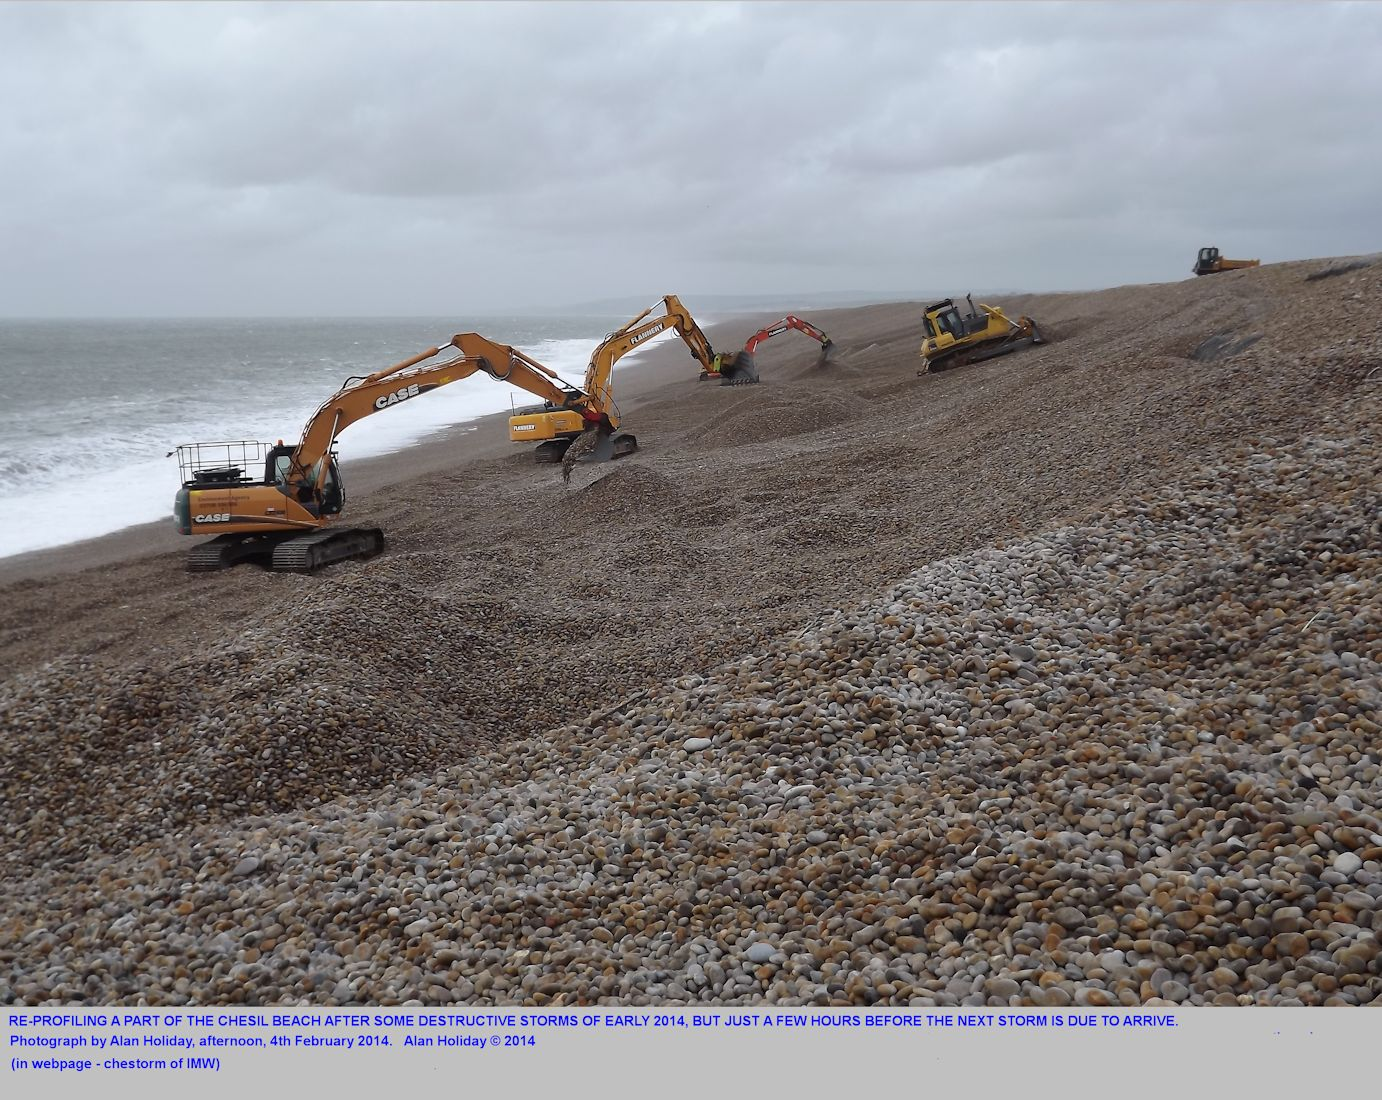 Profiling a small part of the Chesil Beach using machines; work by the Environment Agency, north Chiswell, Dorset, 4th February 2014; photograph by Alan Holiday